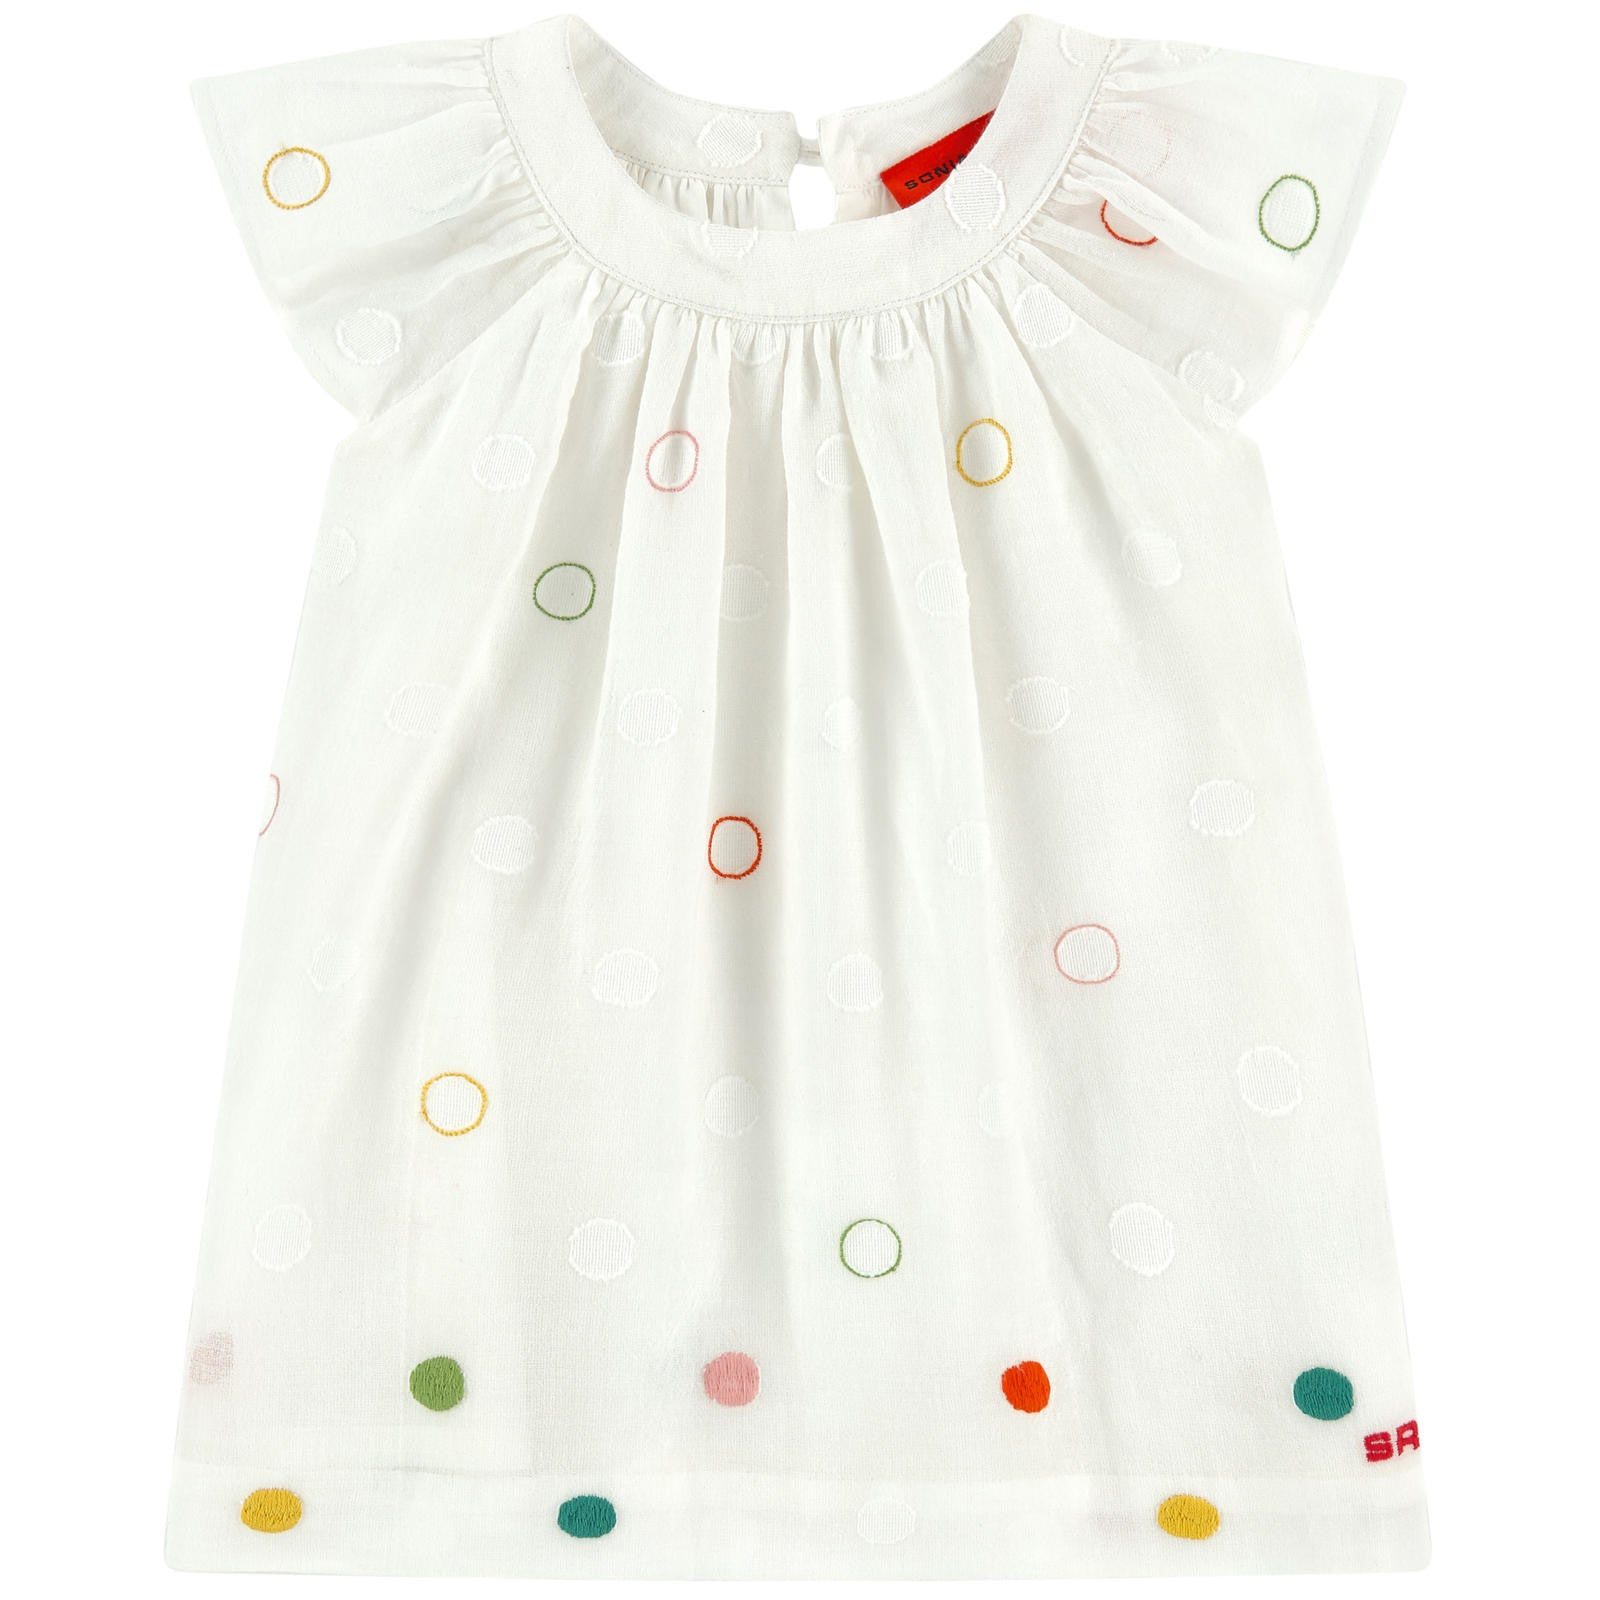 Sonia Embroidered Dot Baby Set - Ladida